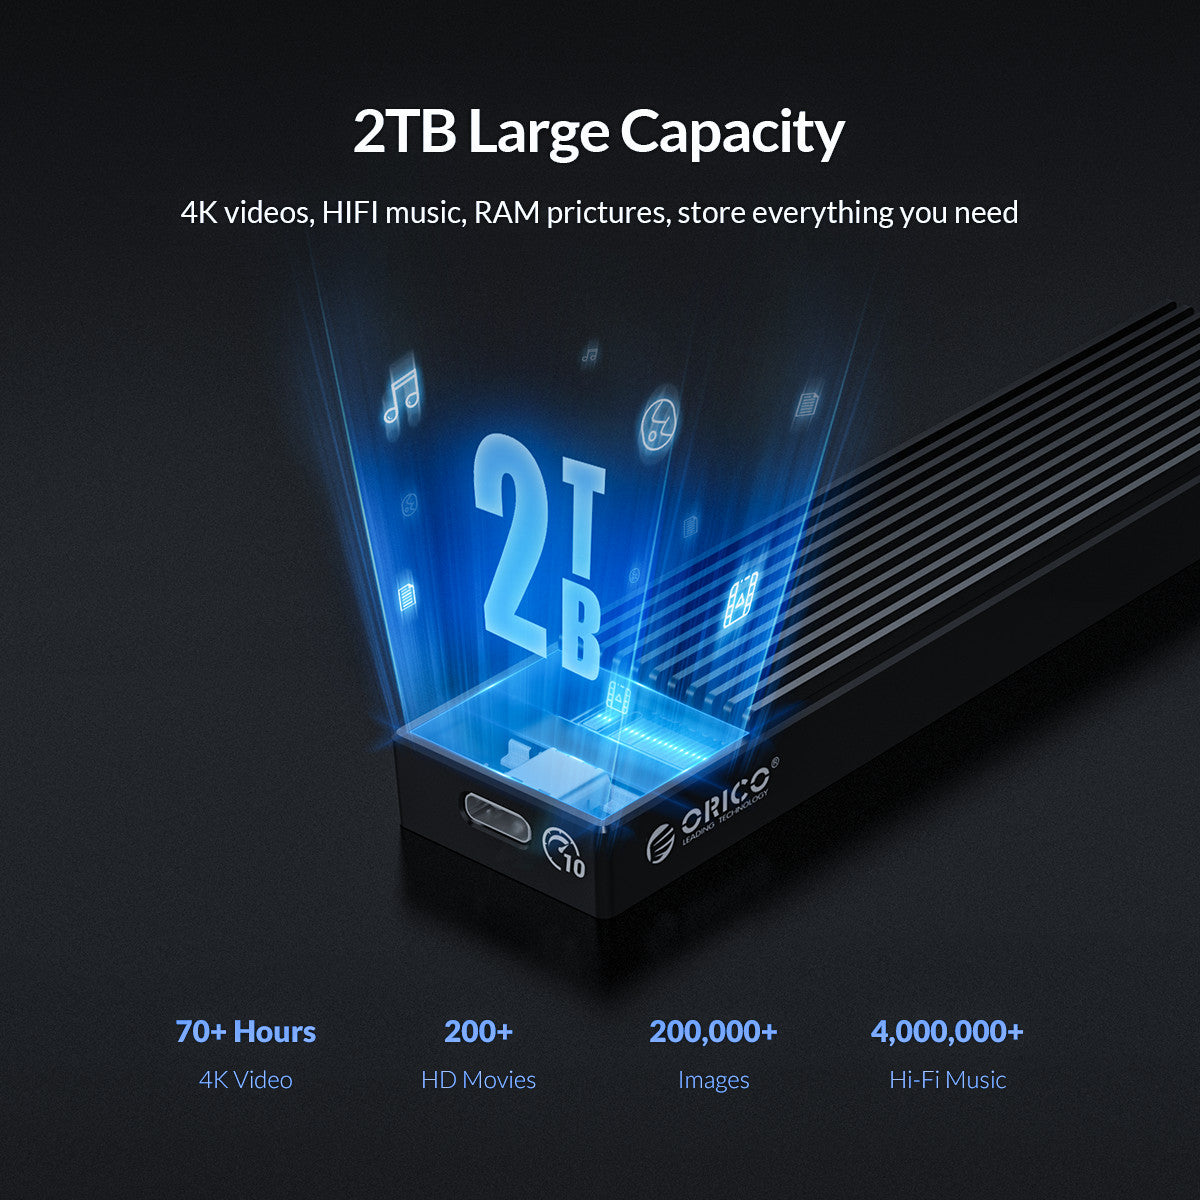 LSDT M.2 NVME Enclosure USB C Gen2 10Gbps PCIe SSD Case M2 SATA NGFF 5Gbps SSD Case Tool Free For 2230/2242/2260/2280 SSD